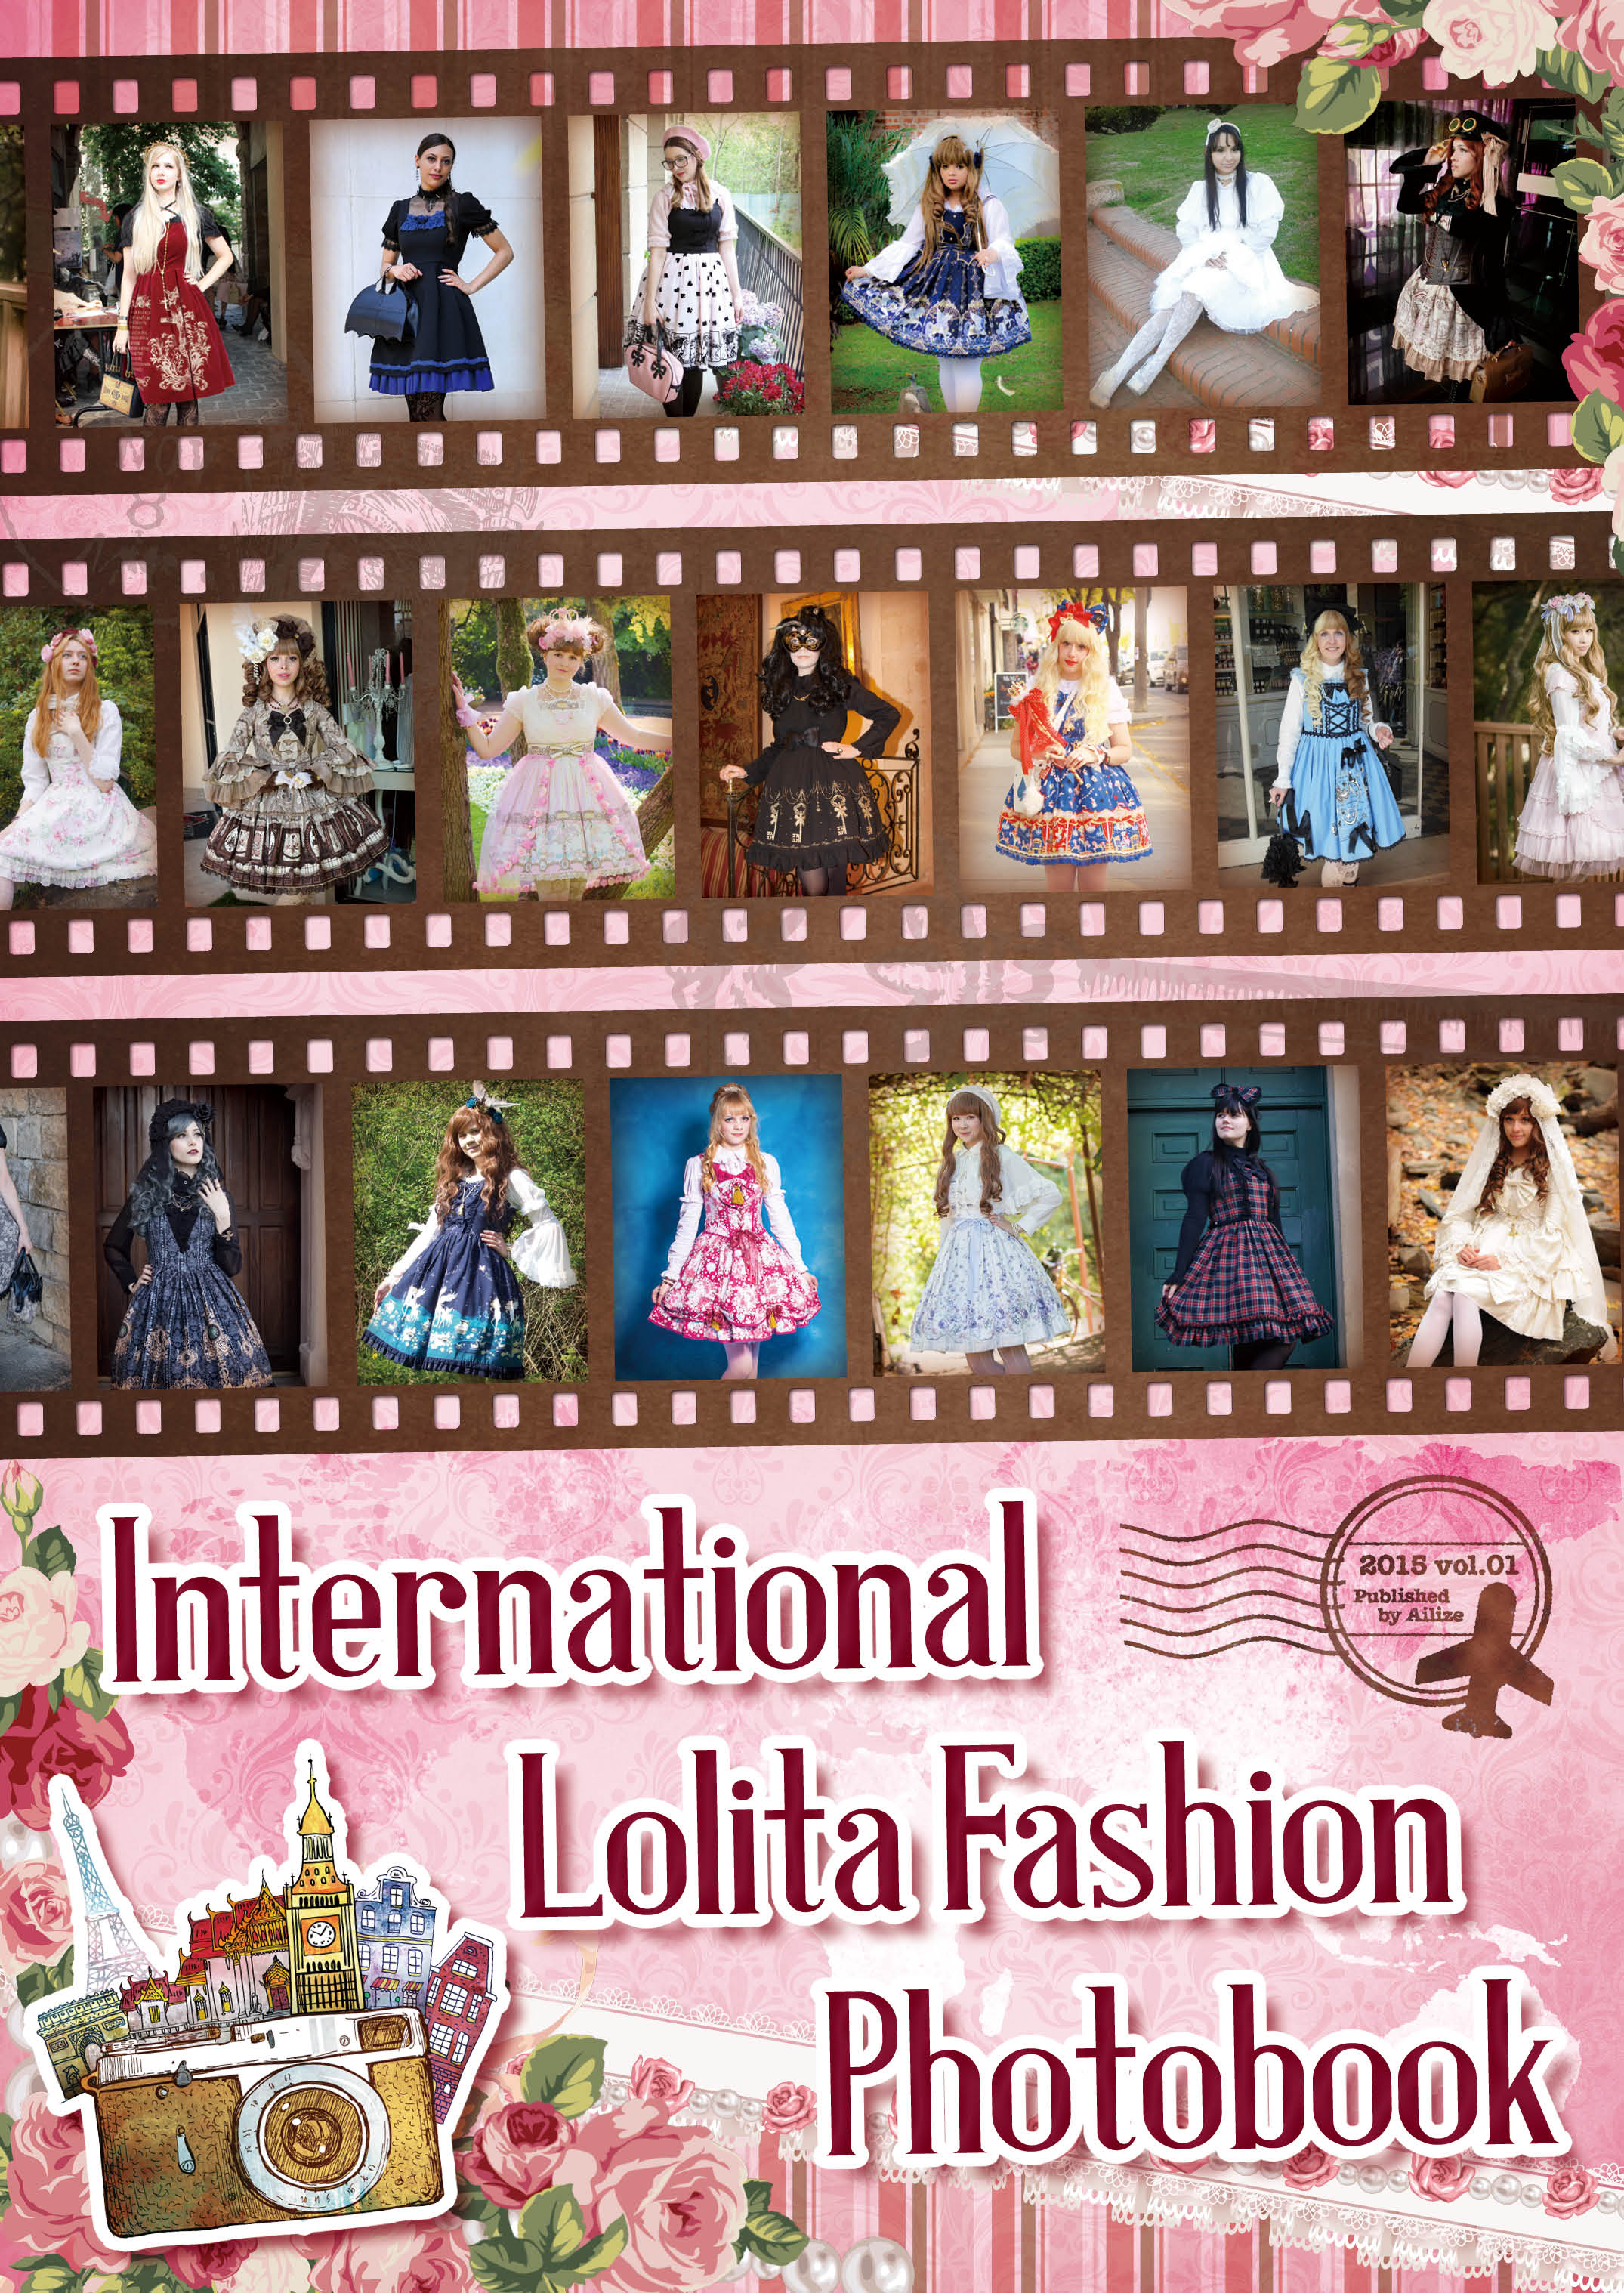 International Lolitafashion Photobook